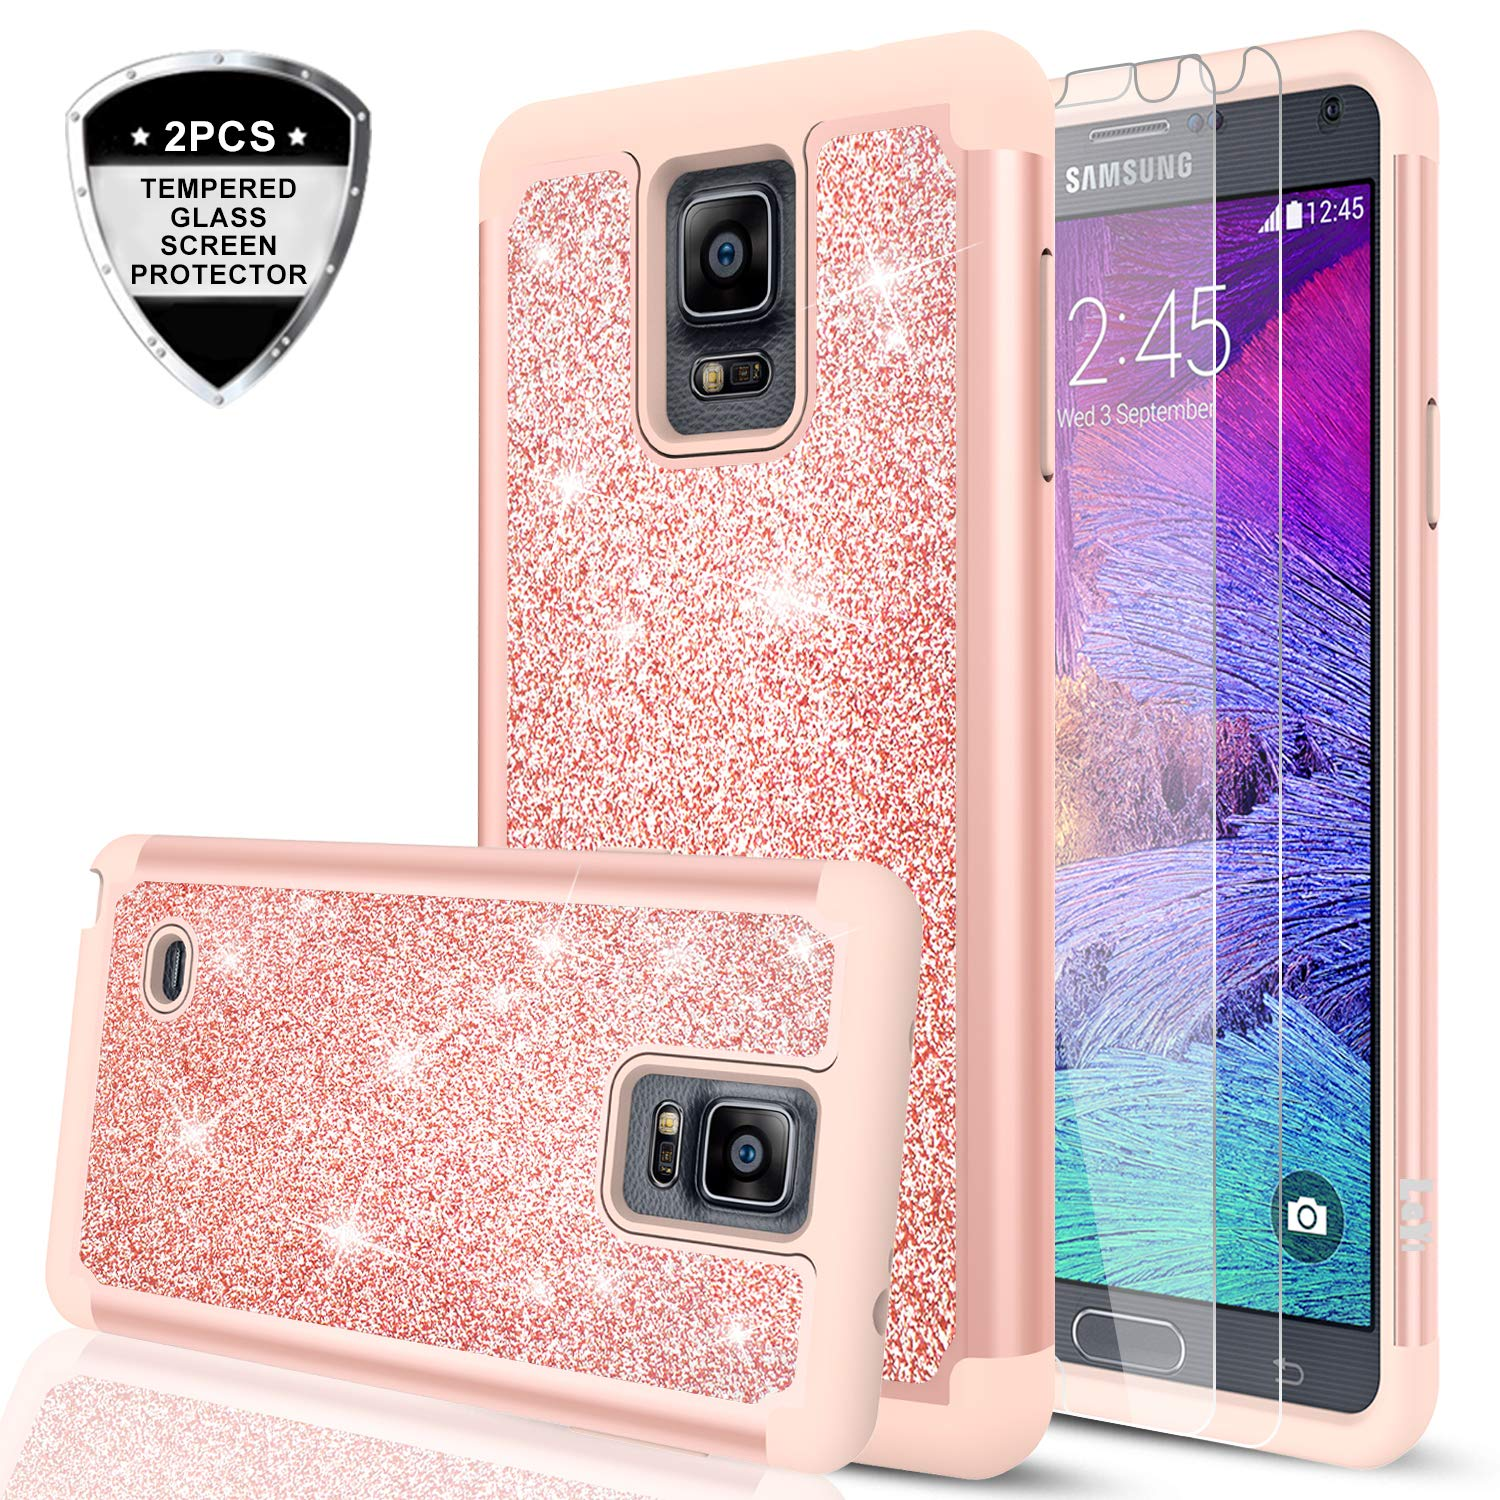 Galaxy Note 8 Glitter Case with 3D PTE Screen Protector [2 Pack], LeYi Bling Girls Women Cute Design Dual Layer Hybrid Heavy Duty Protective Phone Case for Samsung Galaxy Note 8 TP Rose Gold 4335011134